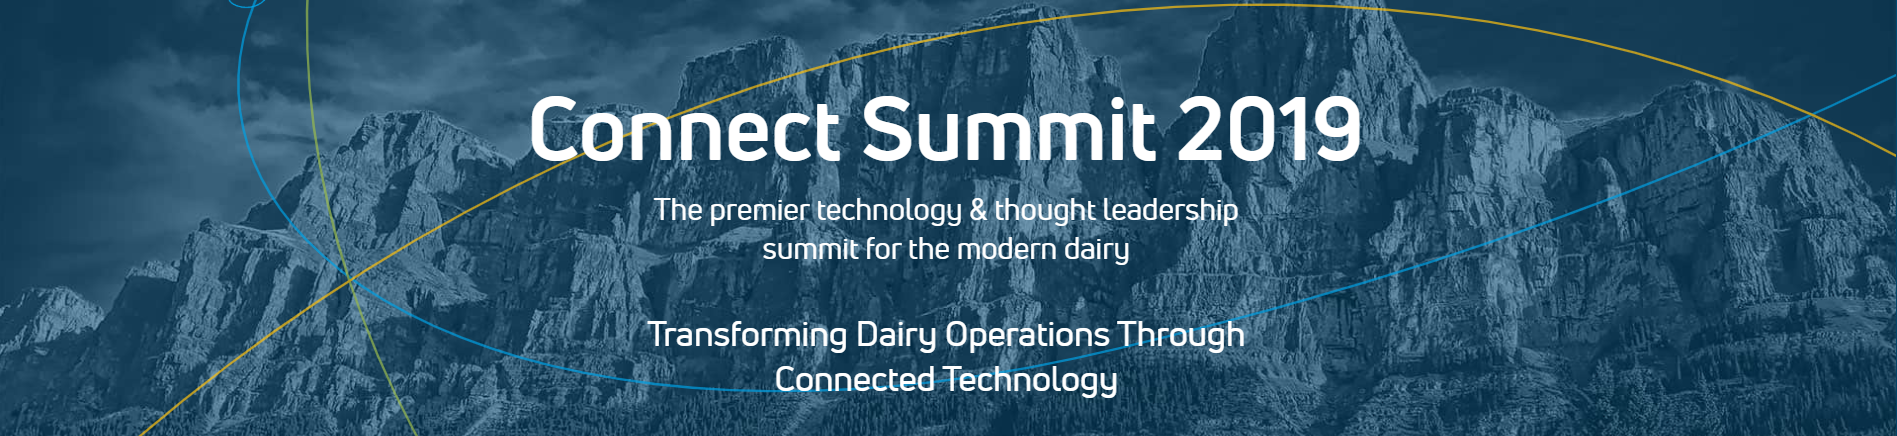 2109 Connect Summit | Artex Barn Solutions